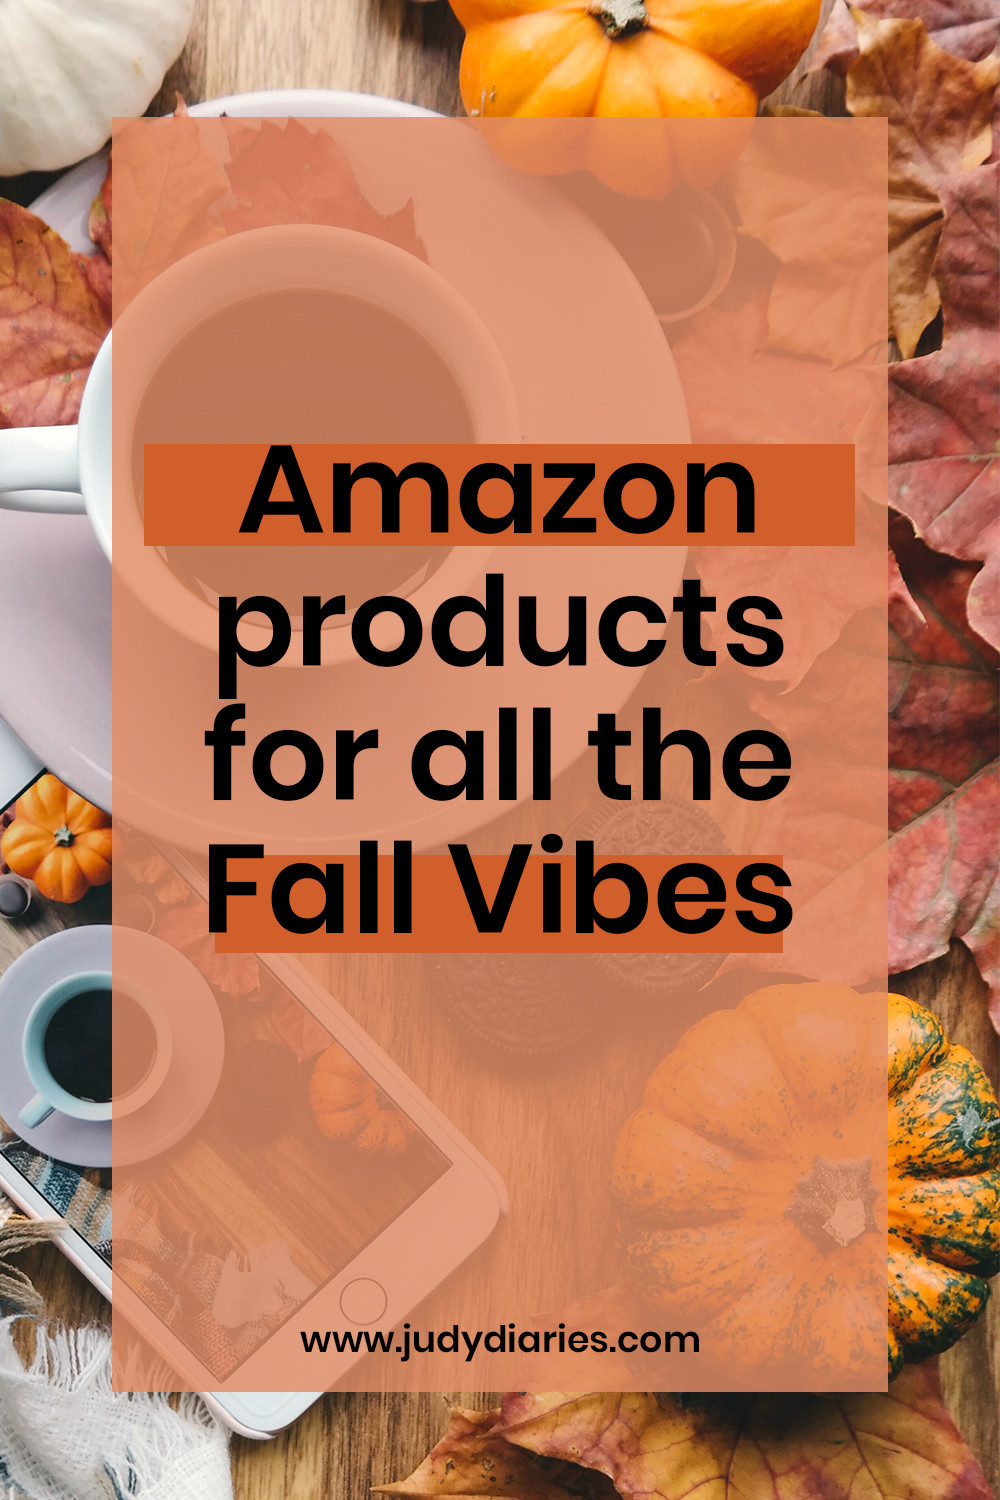 Amazon products for fall vibes mood